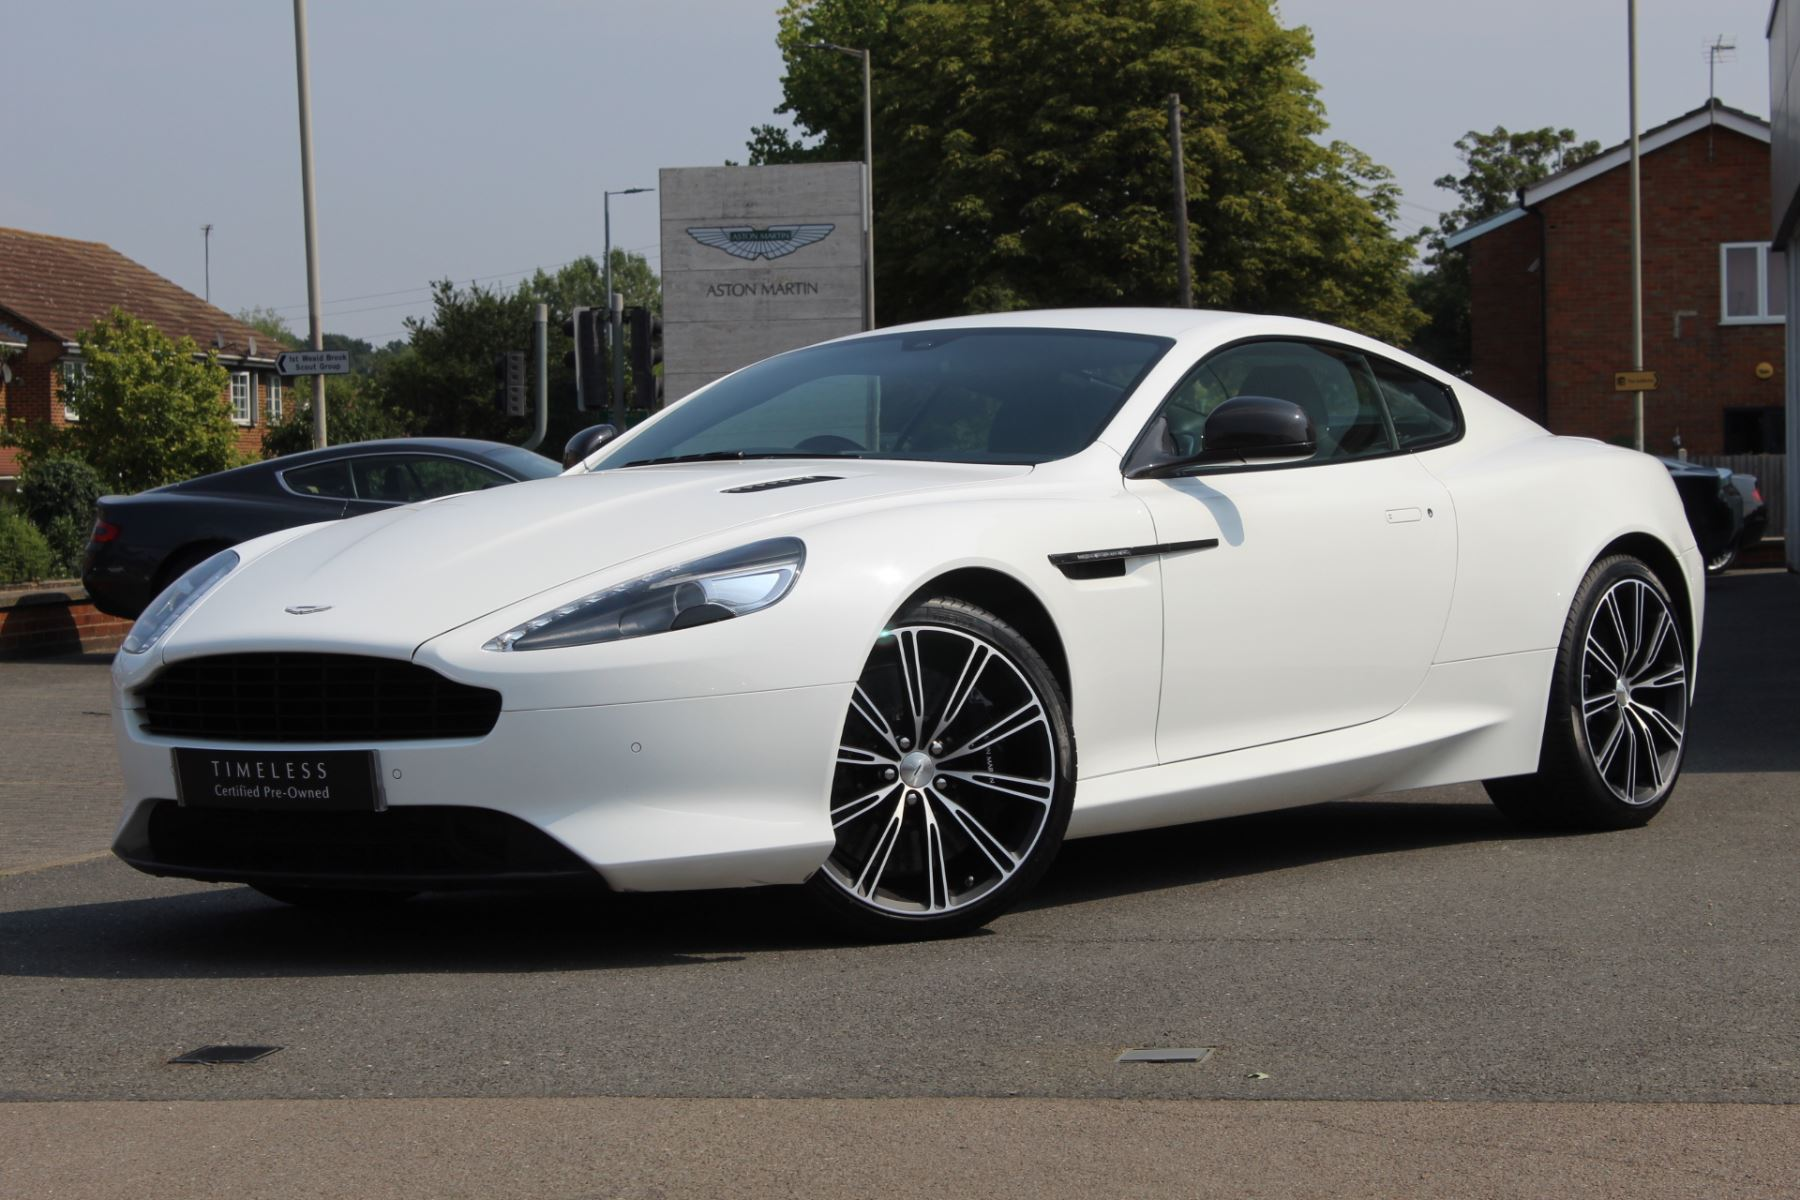 Aston Martin DB9 V12 2dr Touchtronic image 1